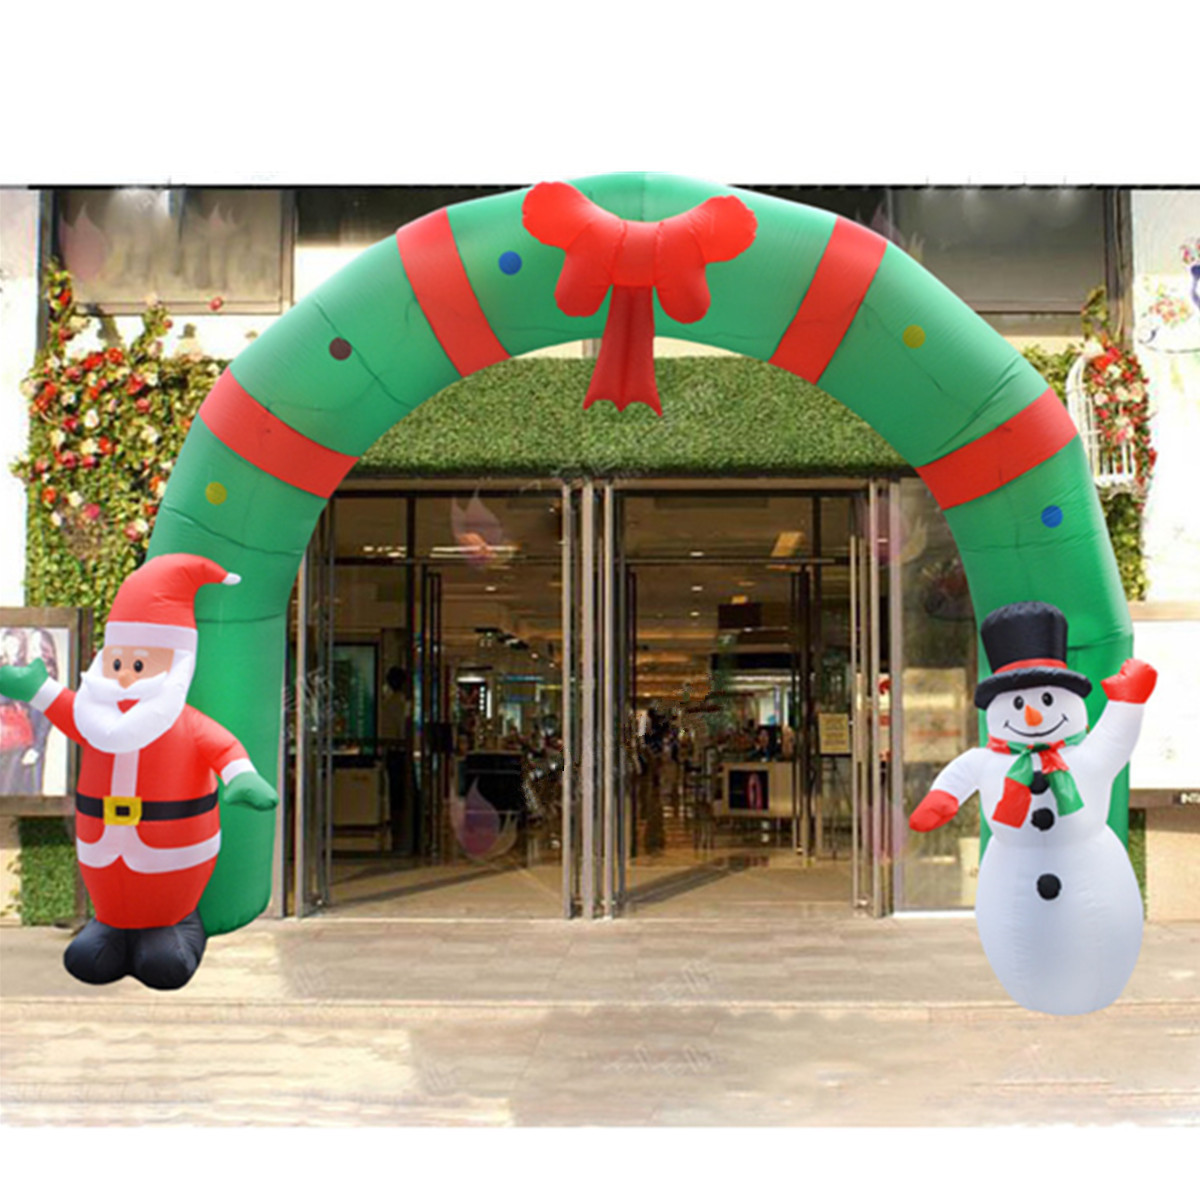 Inflatable Christmas Decorations.250cm Huge Inflatable Christmas Arch Archwaysanta Snowman Indoor Outdoor Decorations